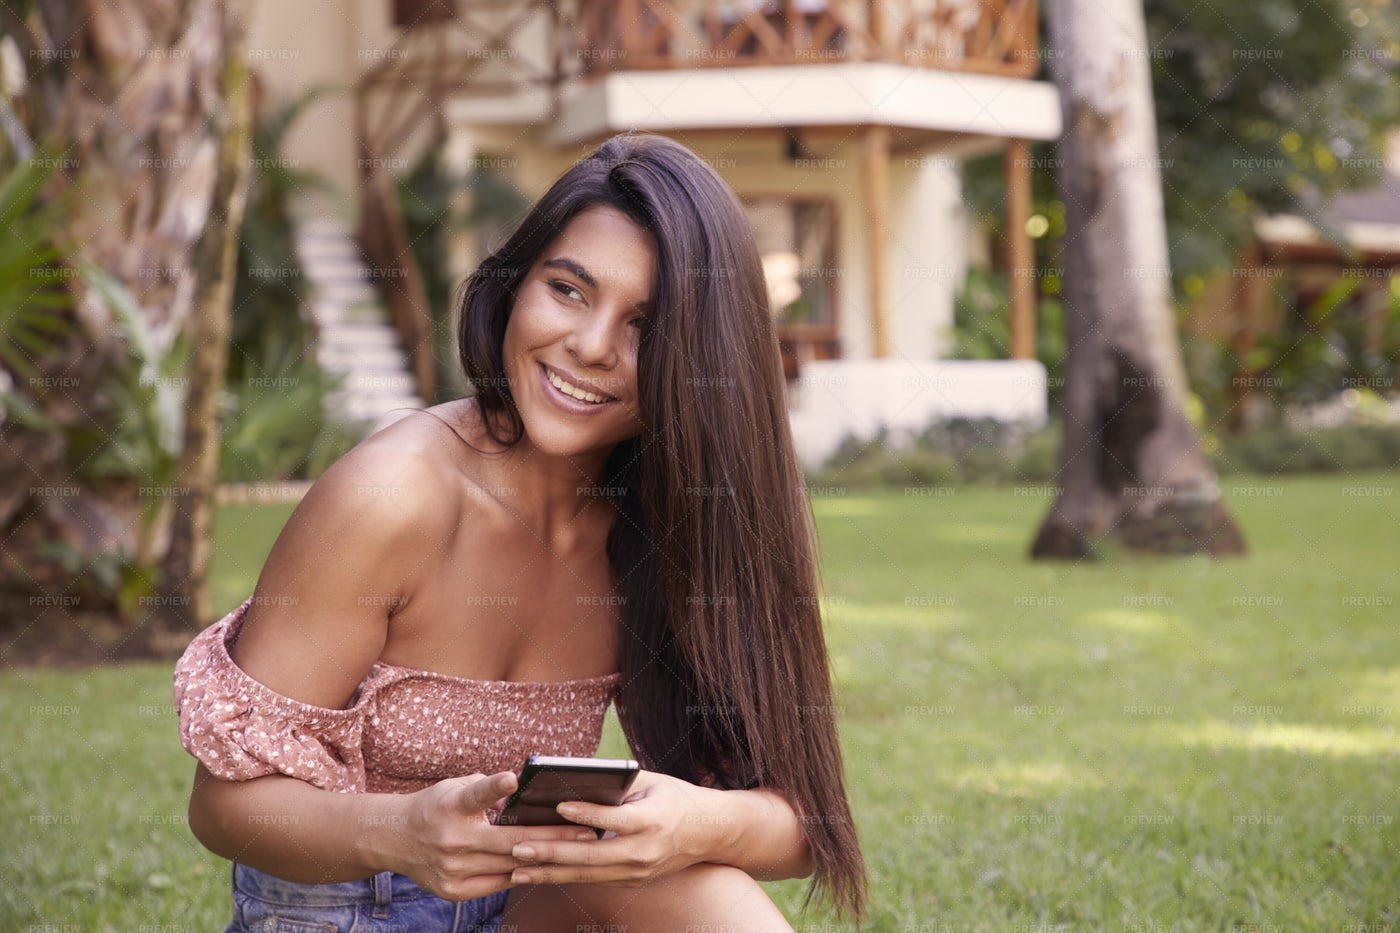 Smiling Girl On Smartphone: Stock Photos